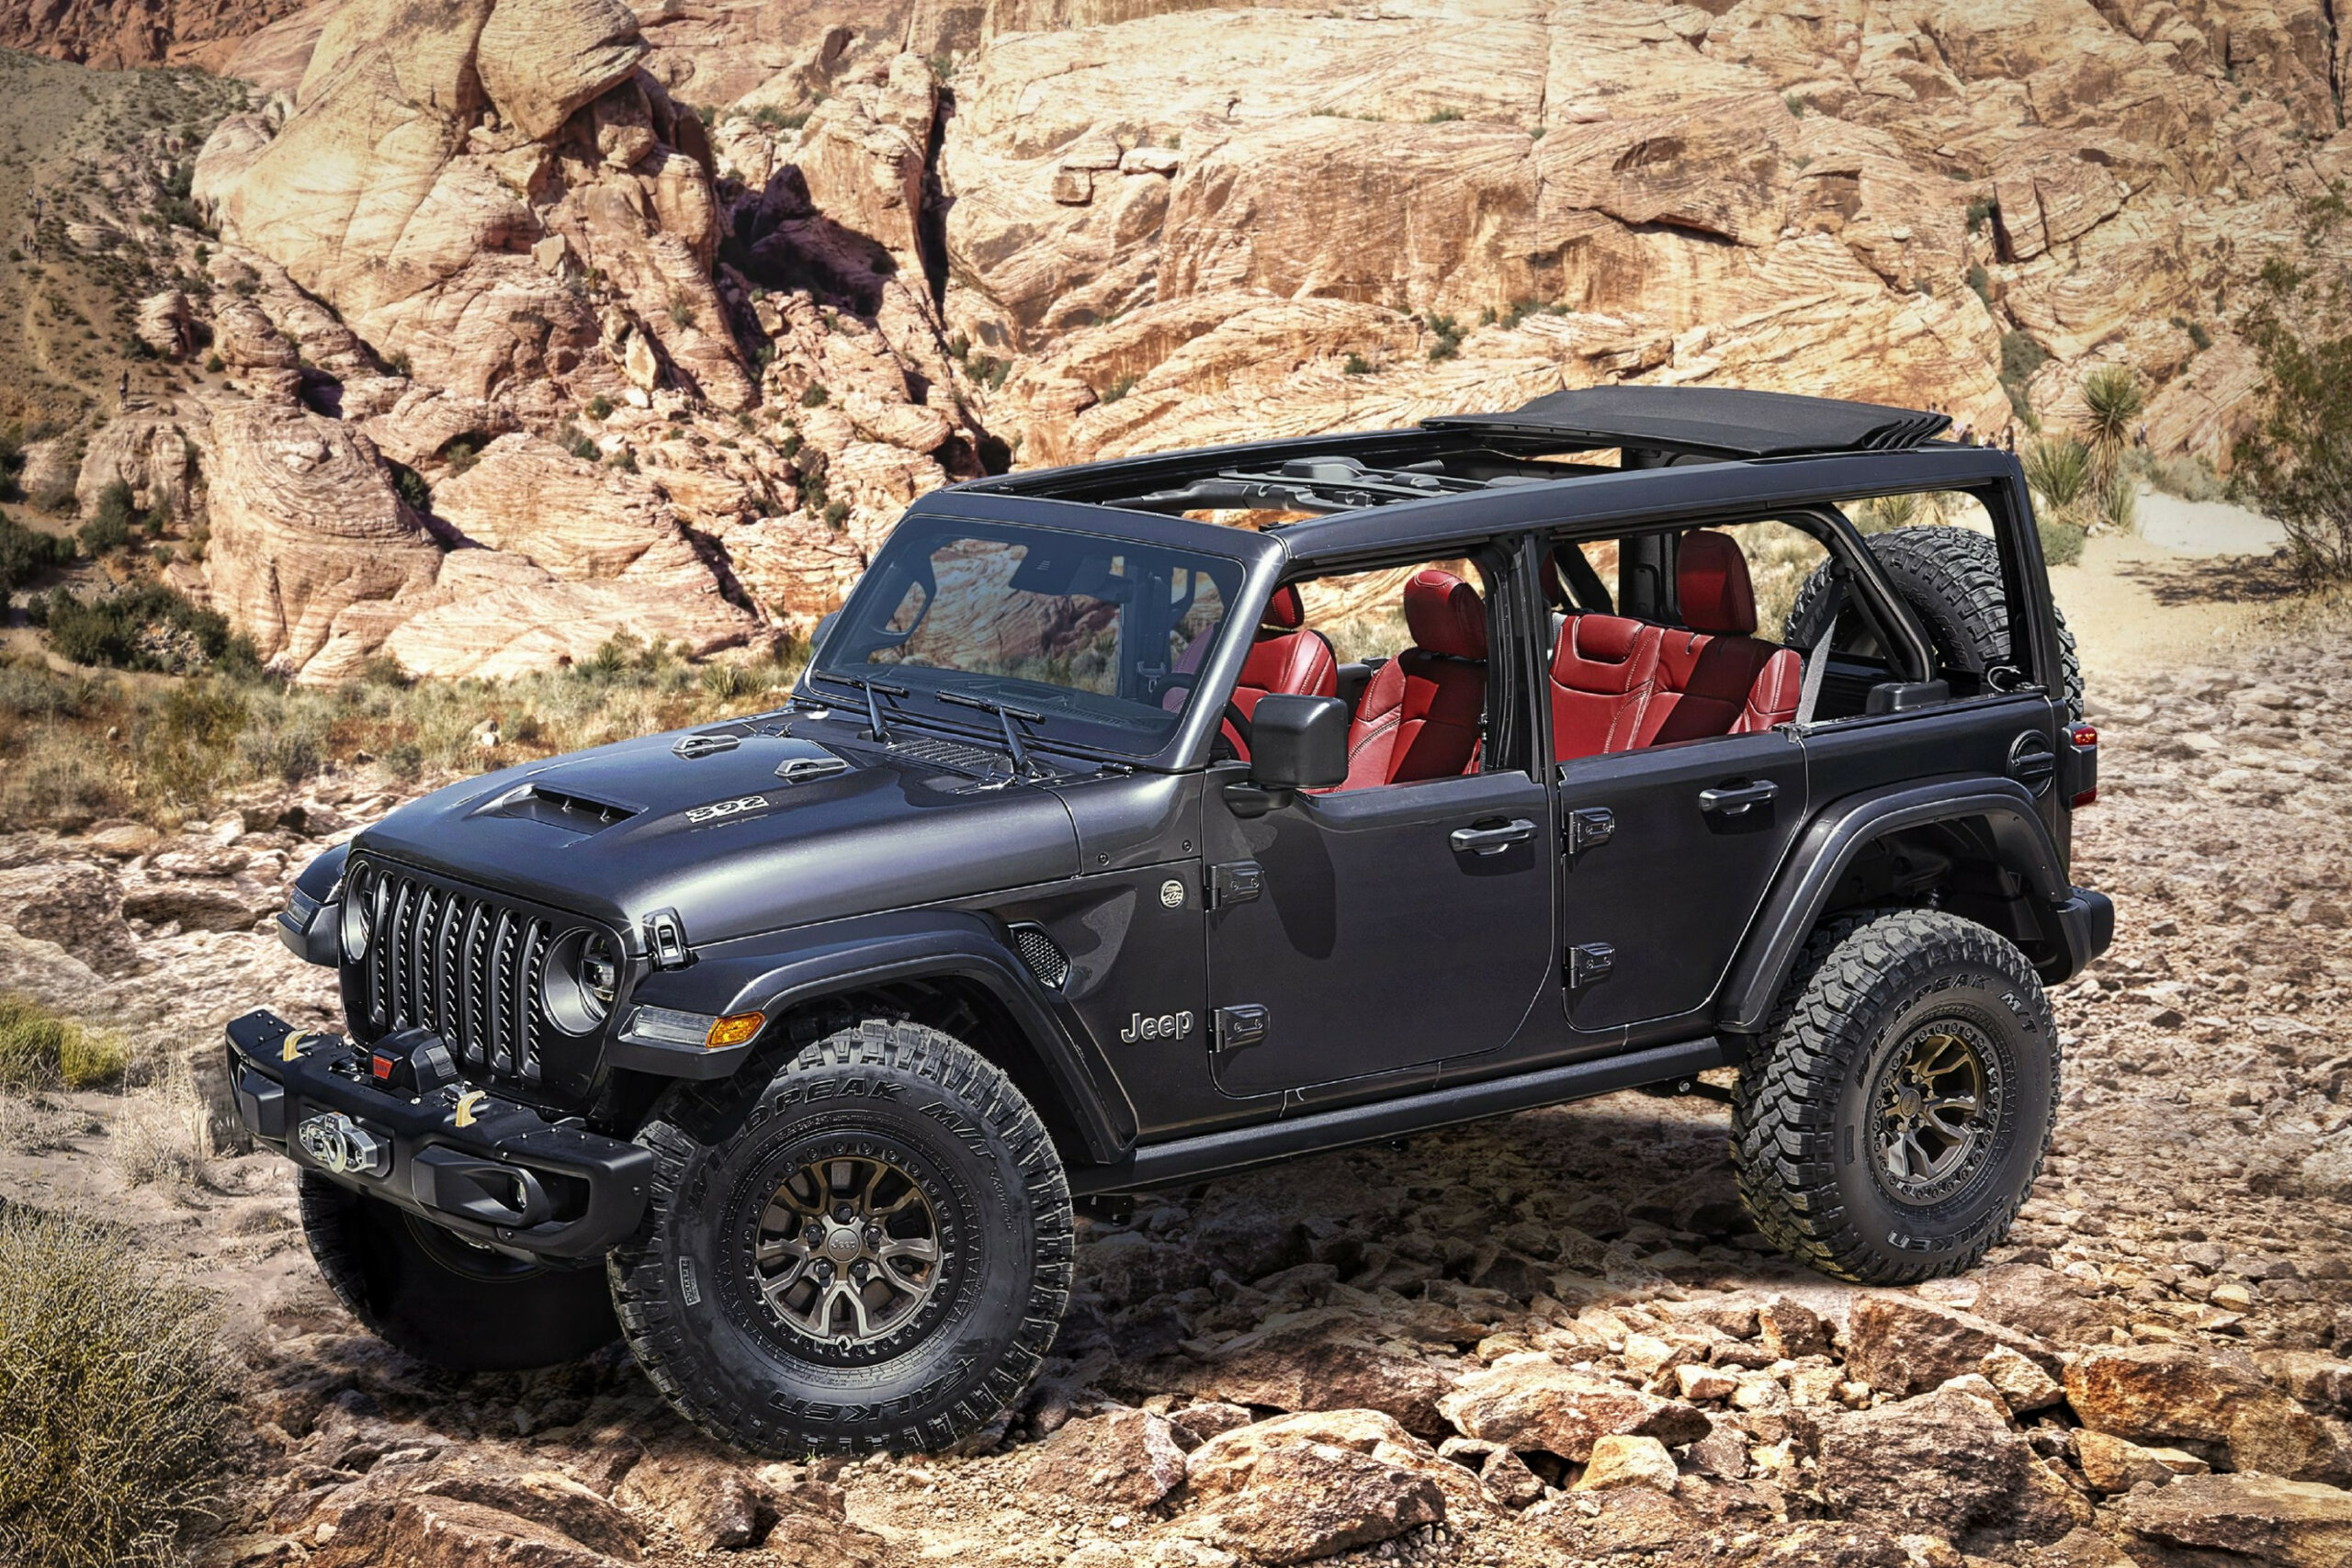 Performance Jeep Unlimited 2022